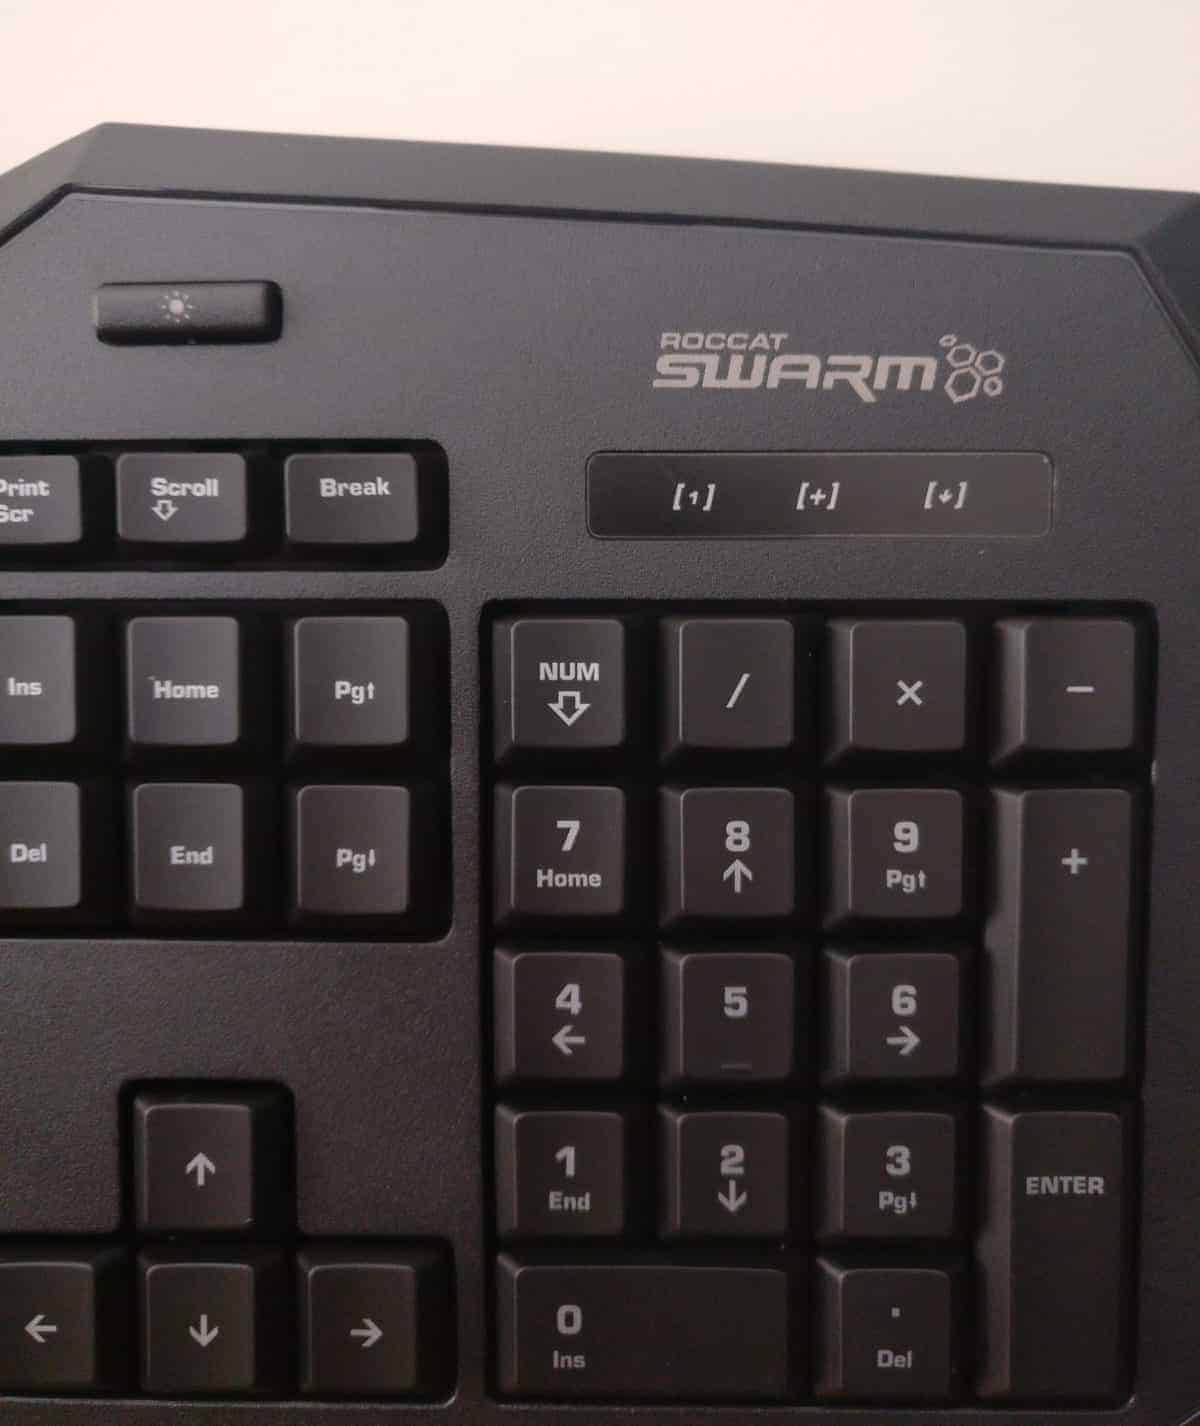 Roccat Isku+ Force FX Gaming Keyboard Review - The Streaming